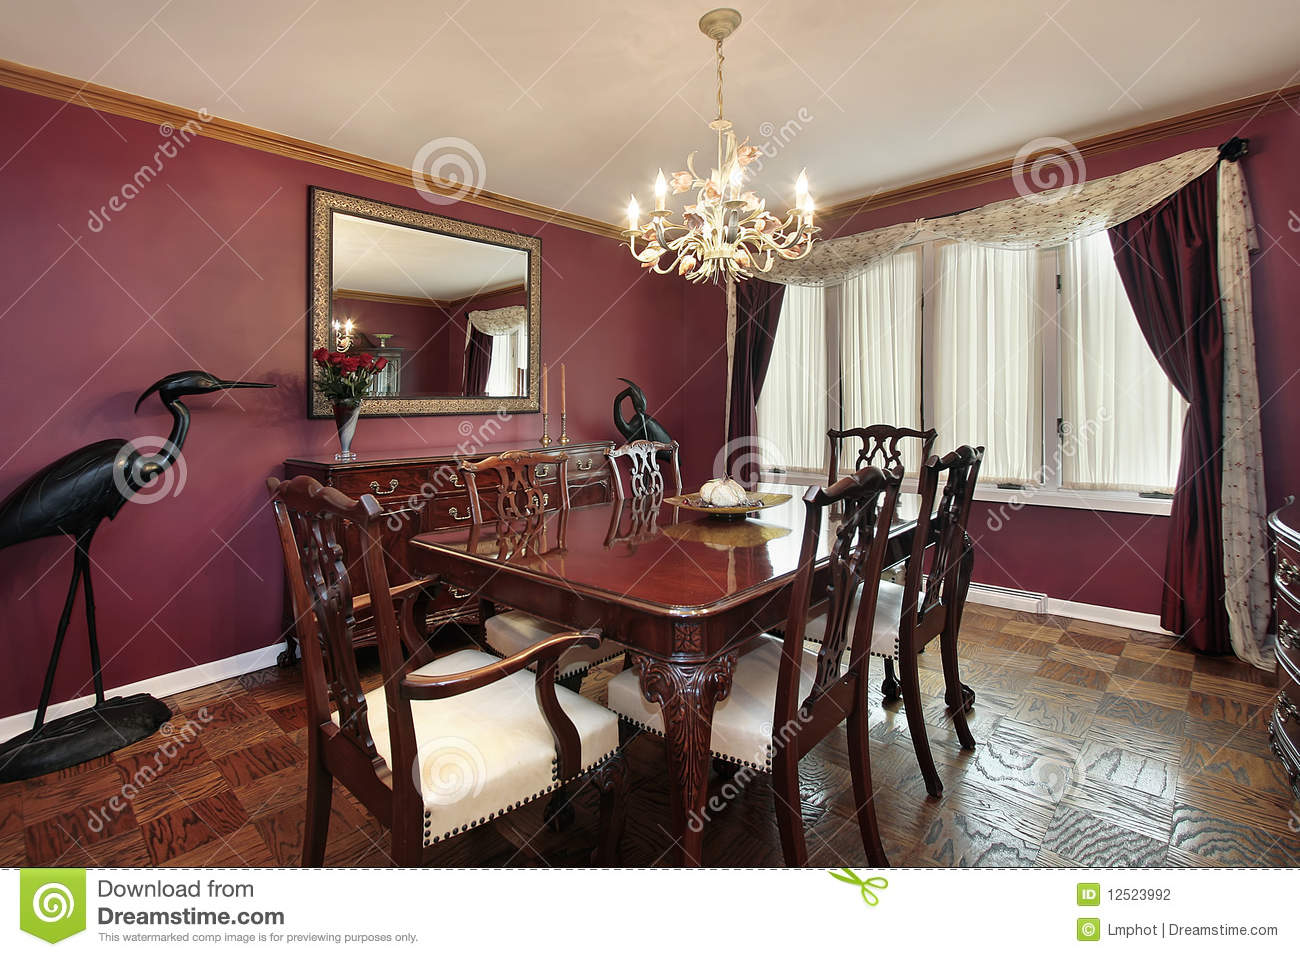 dining room with maroon walls royalty free stock images - image